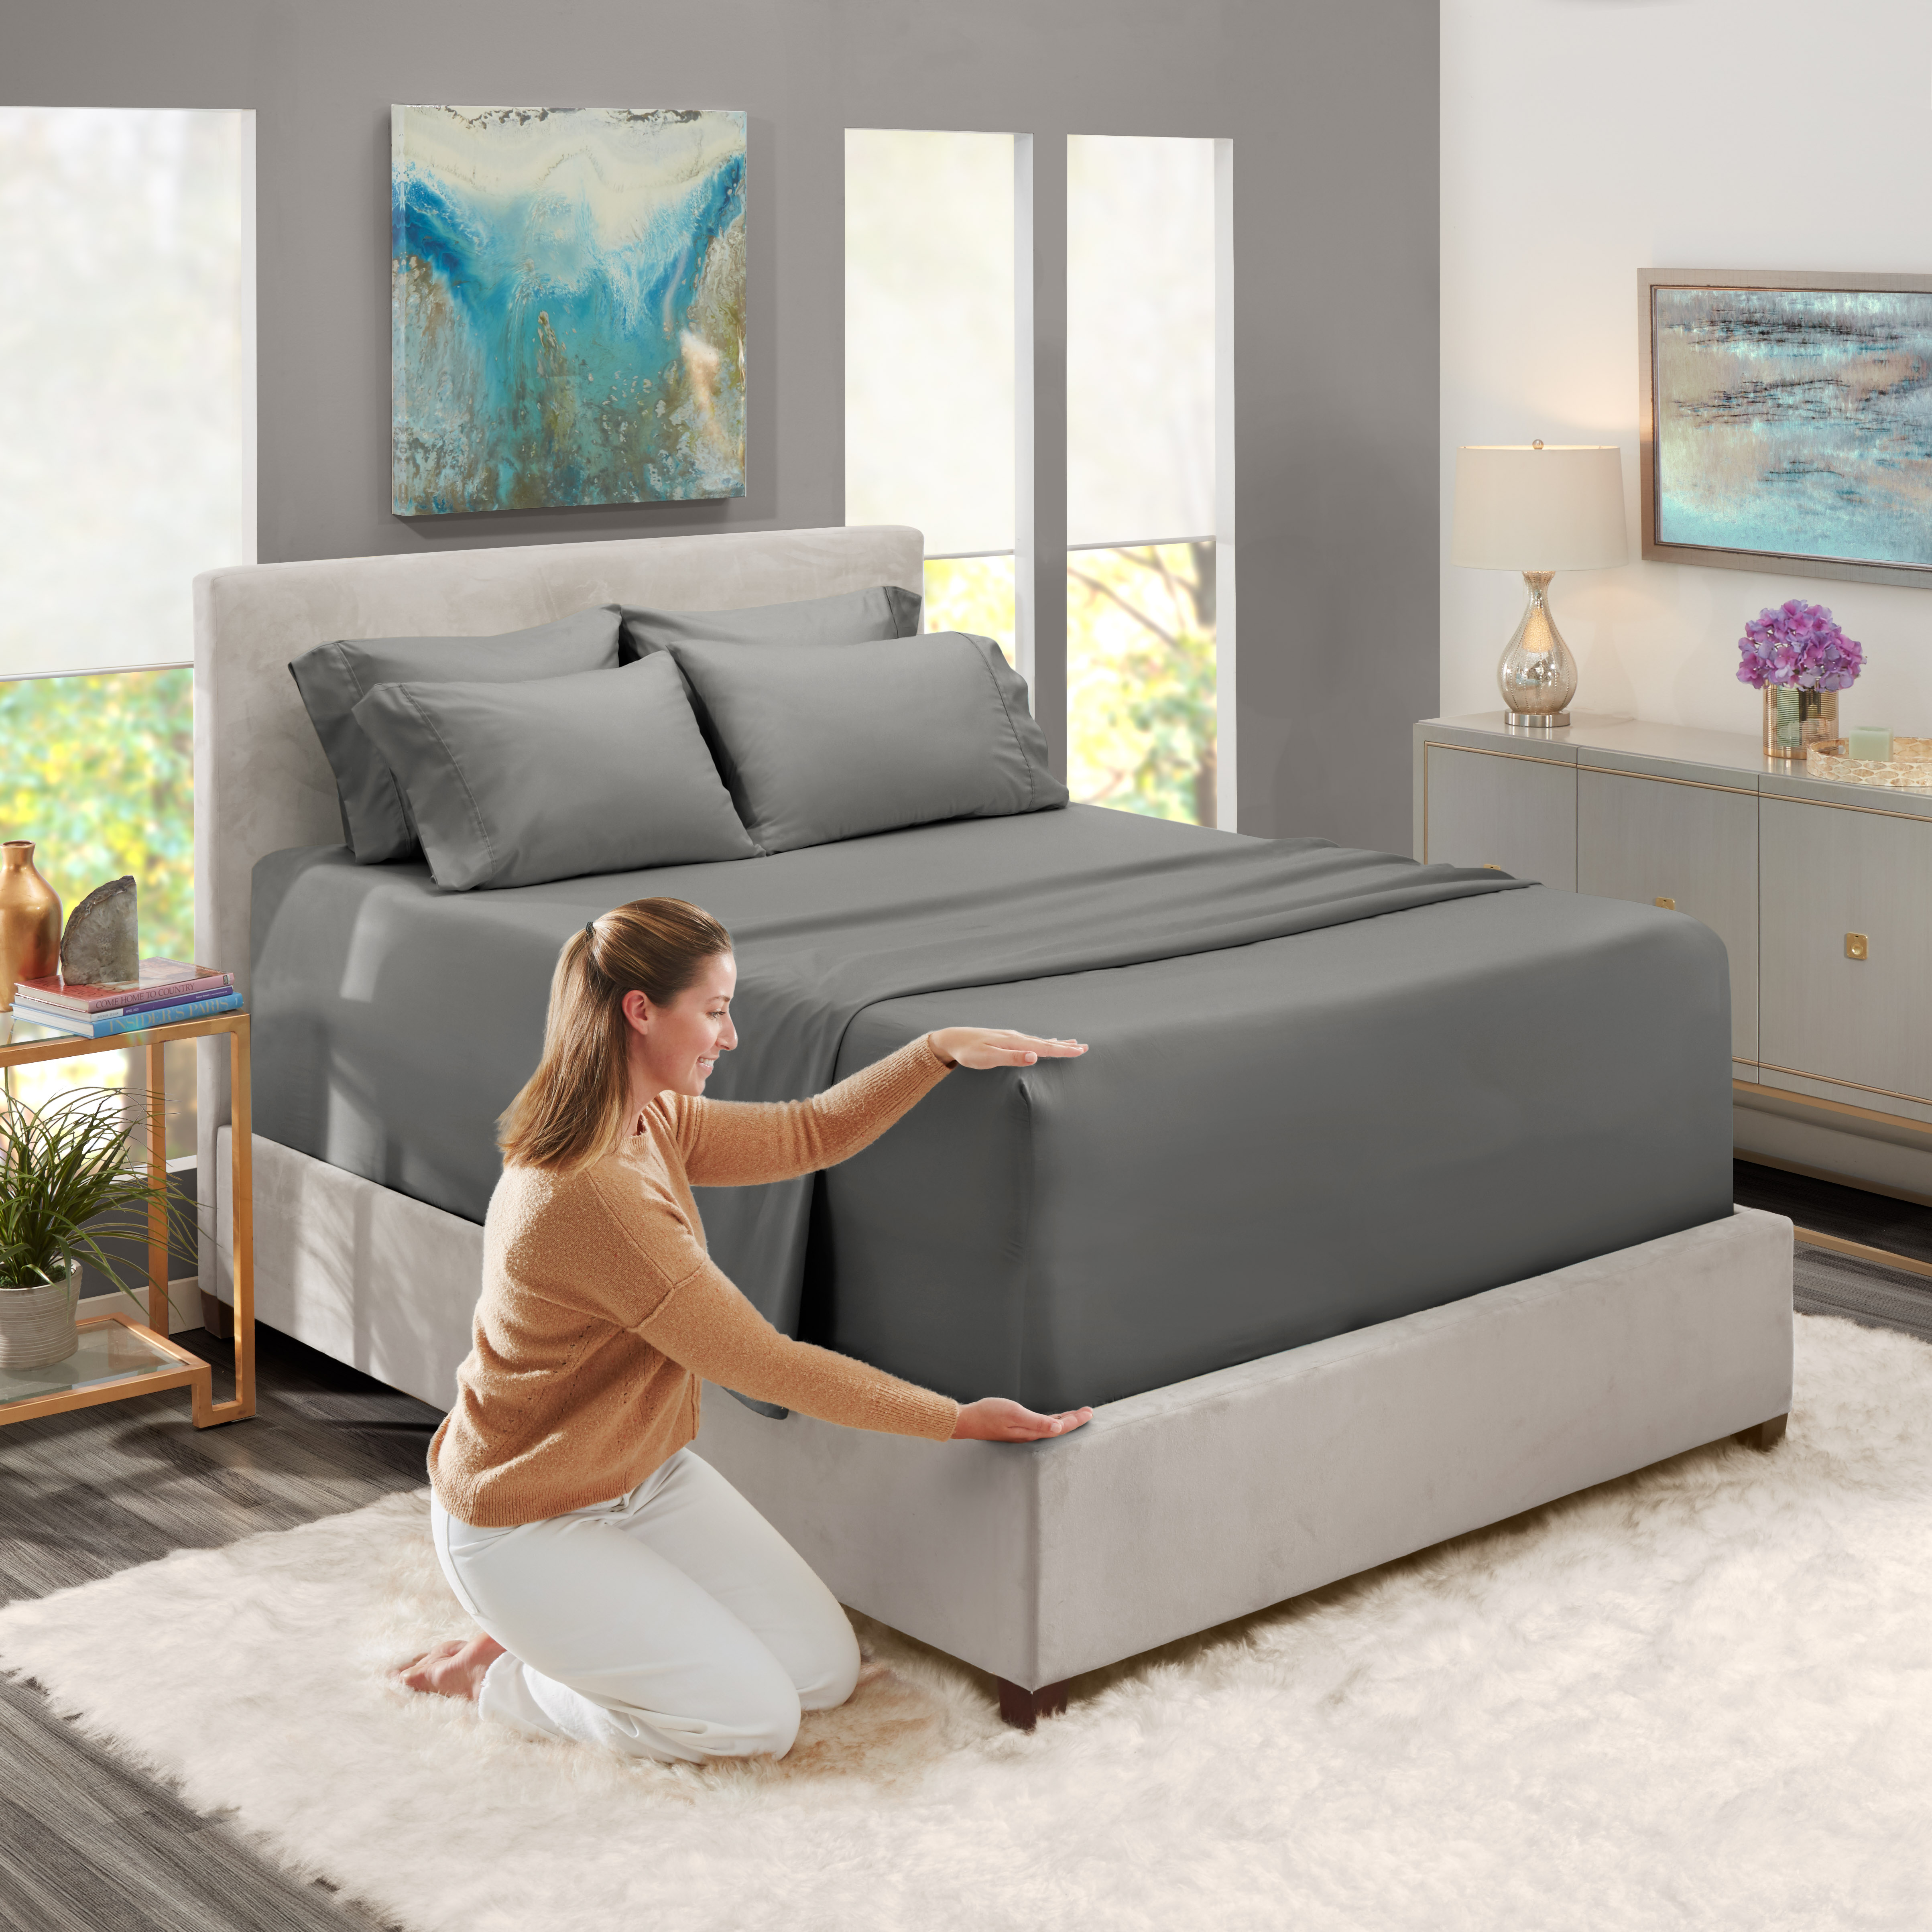 6 Piece 1800 Count Bed Sheet Set Extra Deep Pocket Sheets-All Colors Available!